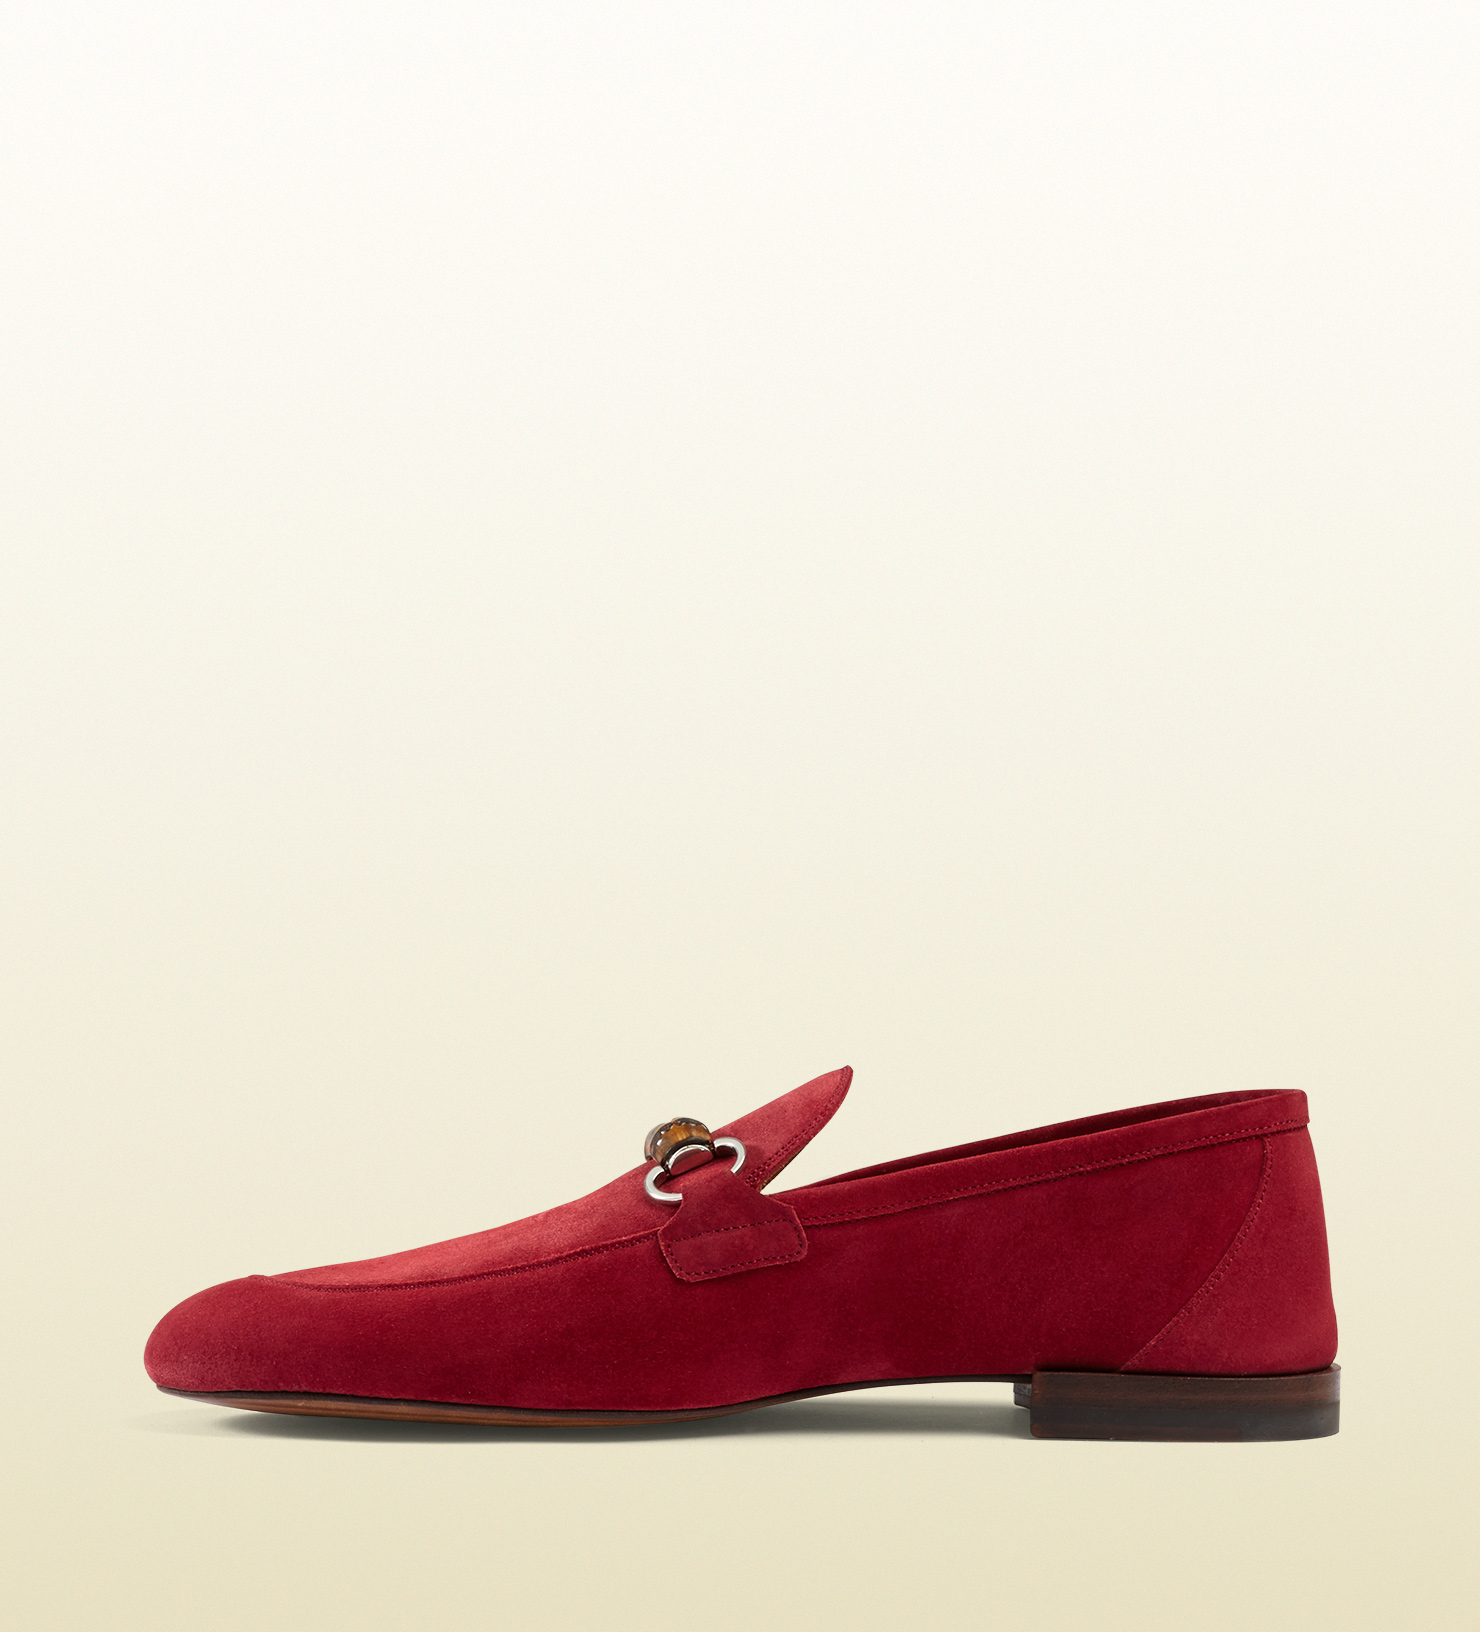 5fa343ecd240d Lyst - Gucci Suede Bamboo Horsebit Loafer in Red for Men